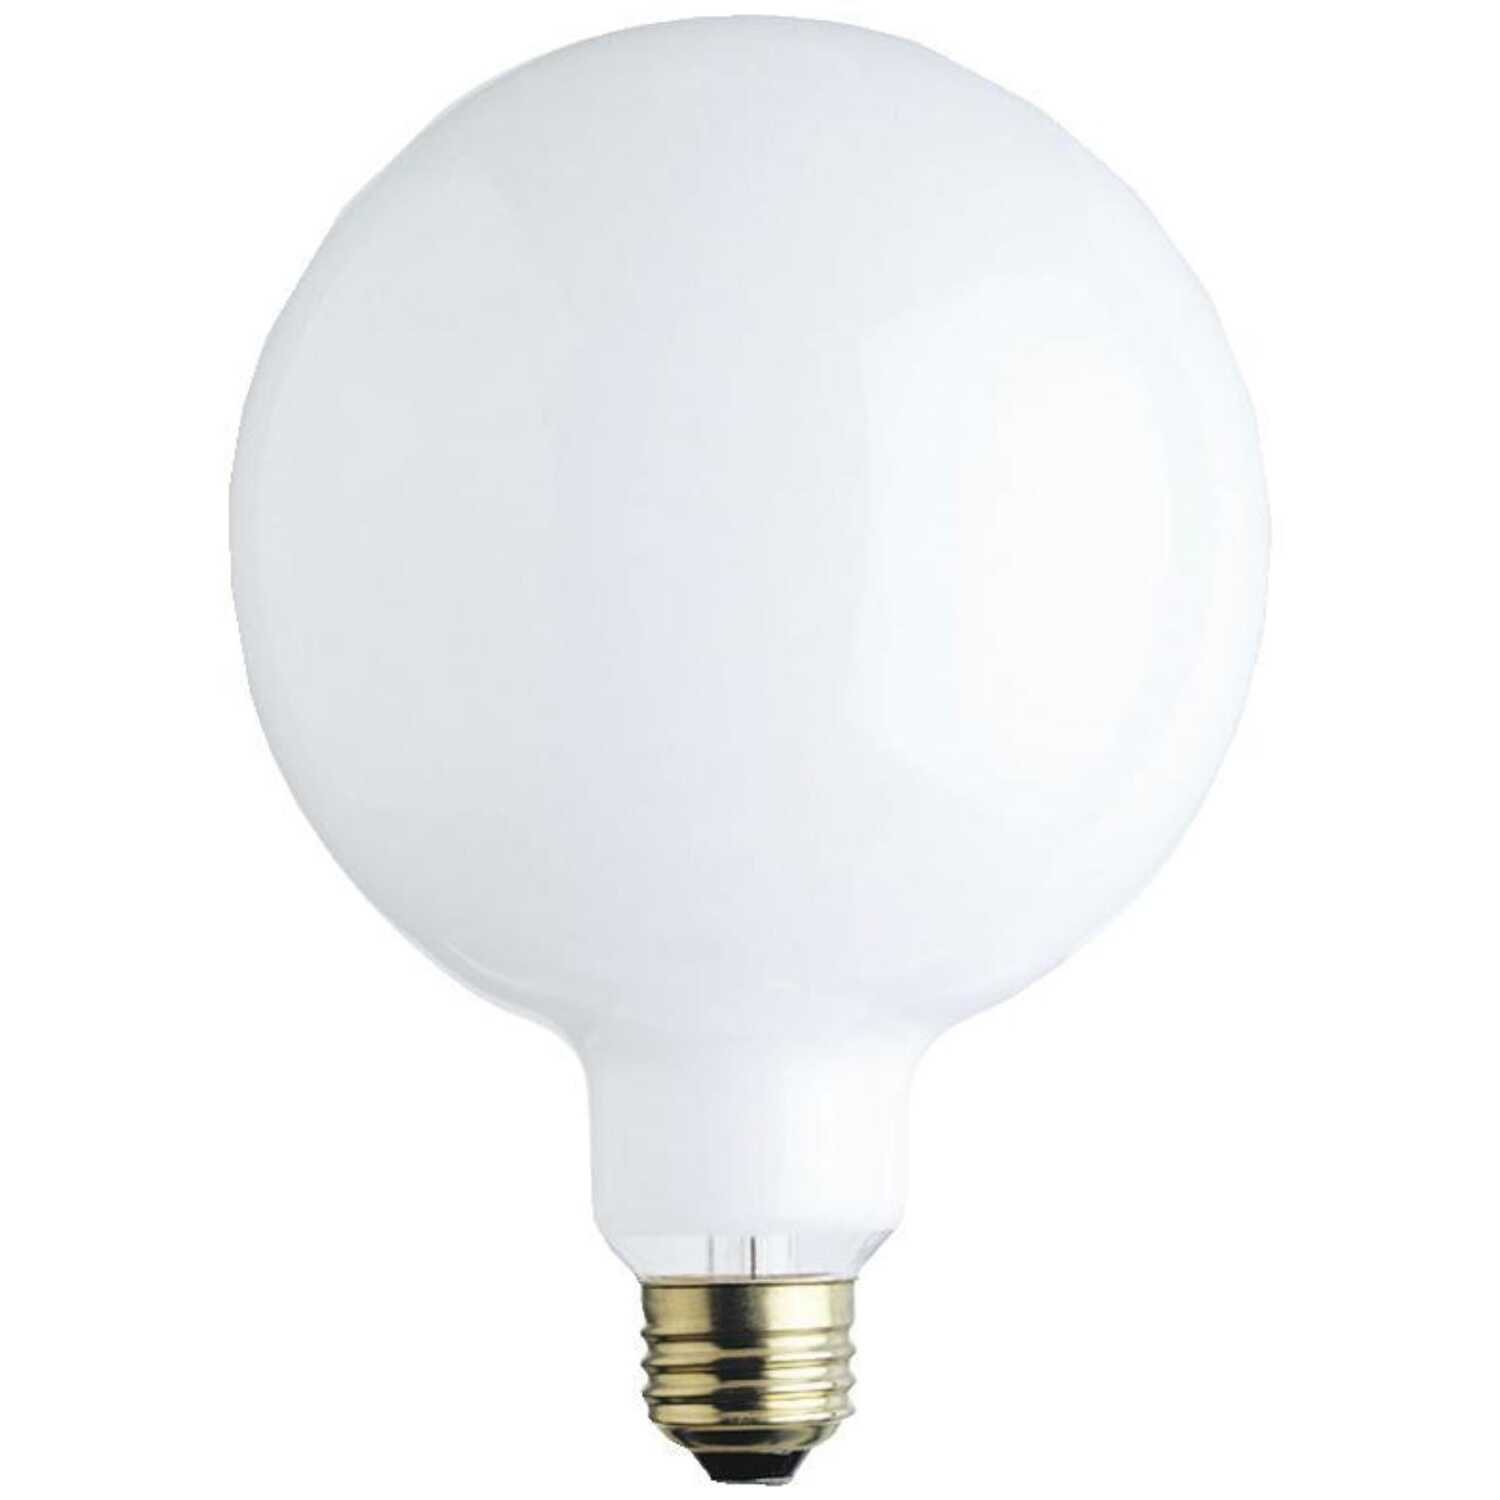 Ace  60 watts G40  Incandescent Light Bulb  680 lumens White (Frosted)  1 pk Globe